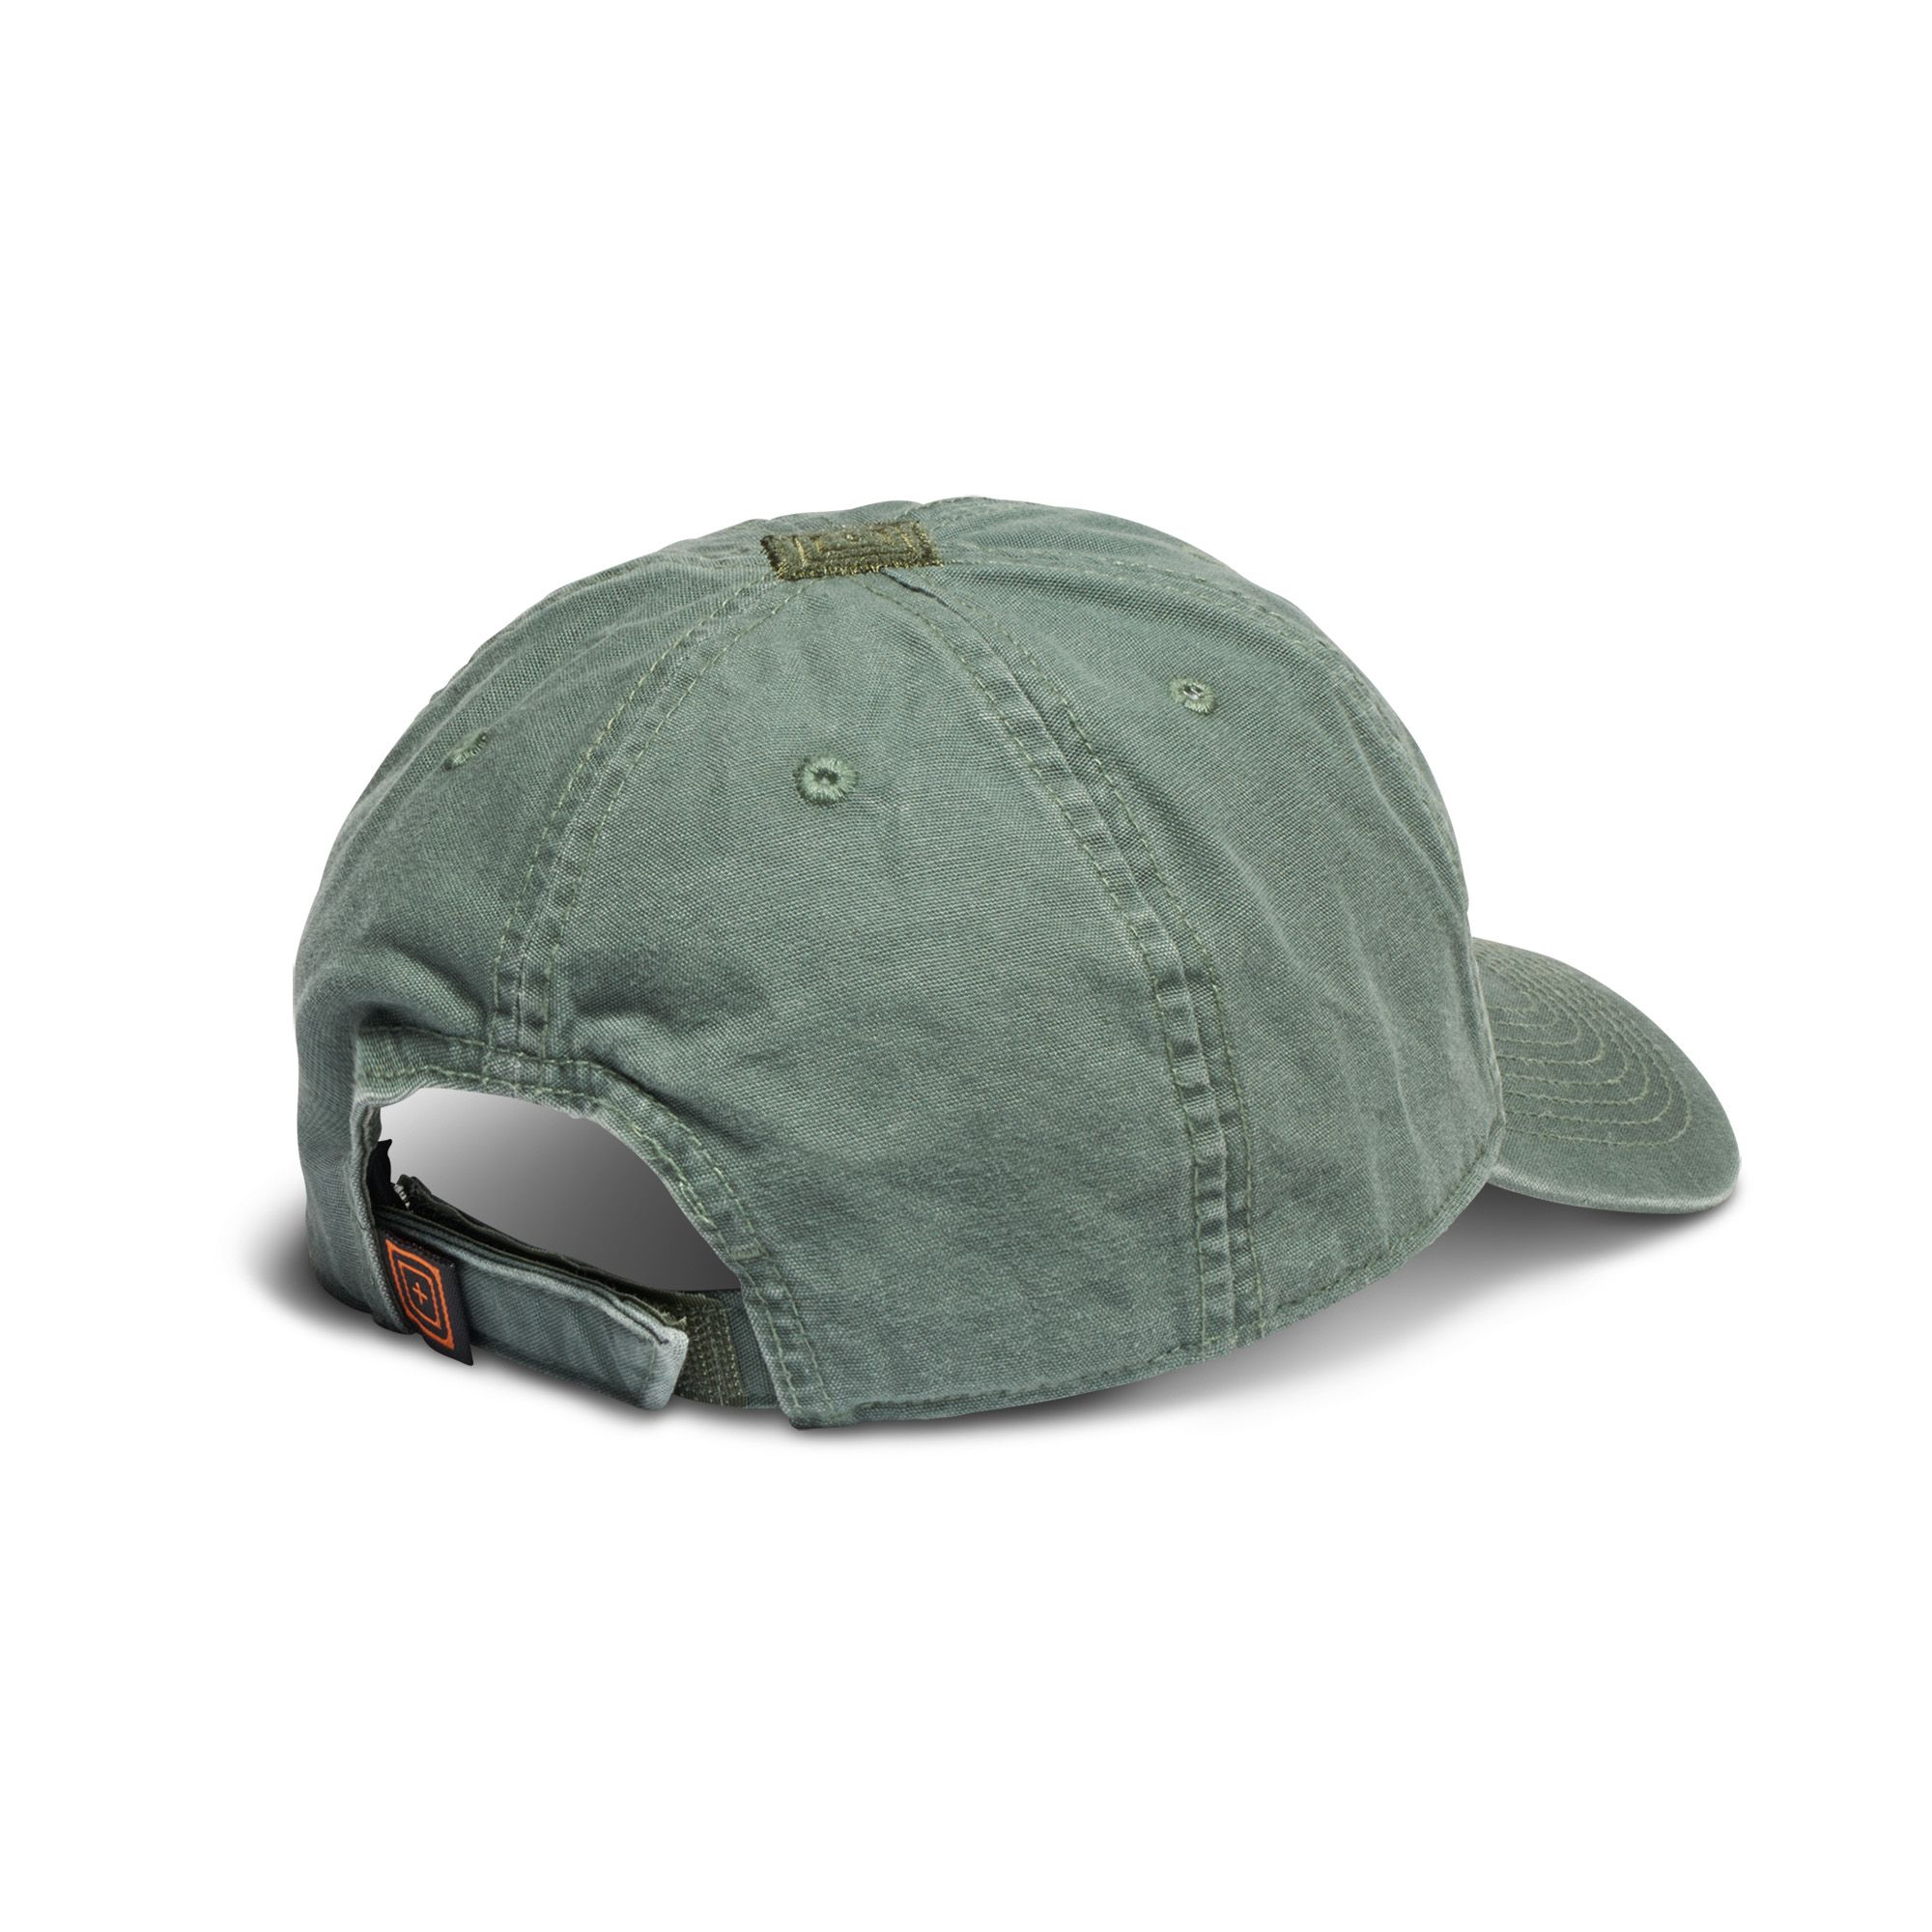 Nón 5.11 Tactical MISSION READY™ 2.0 – OD Green